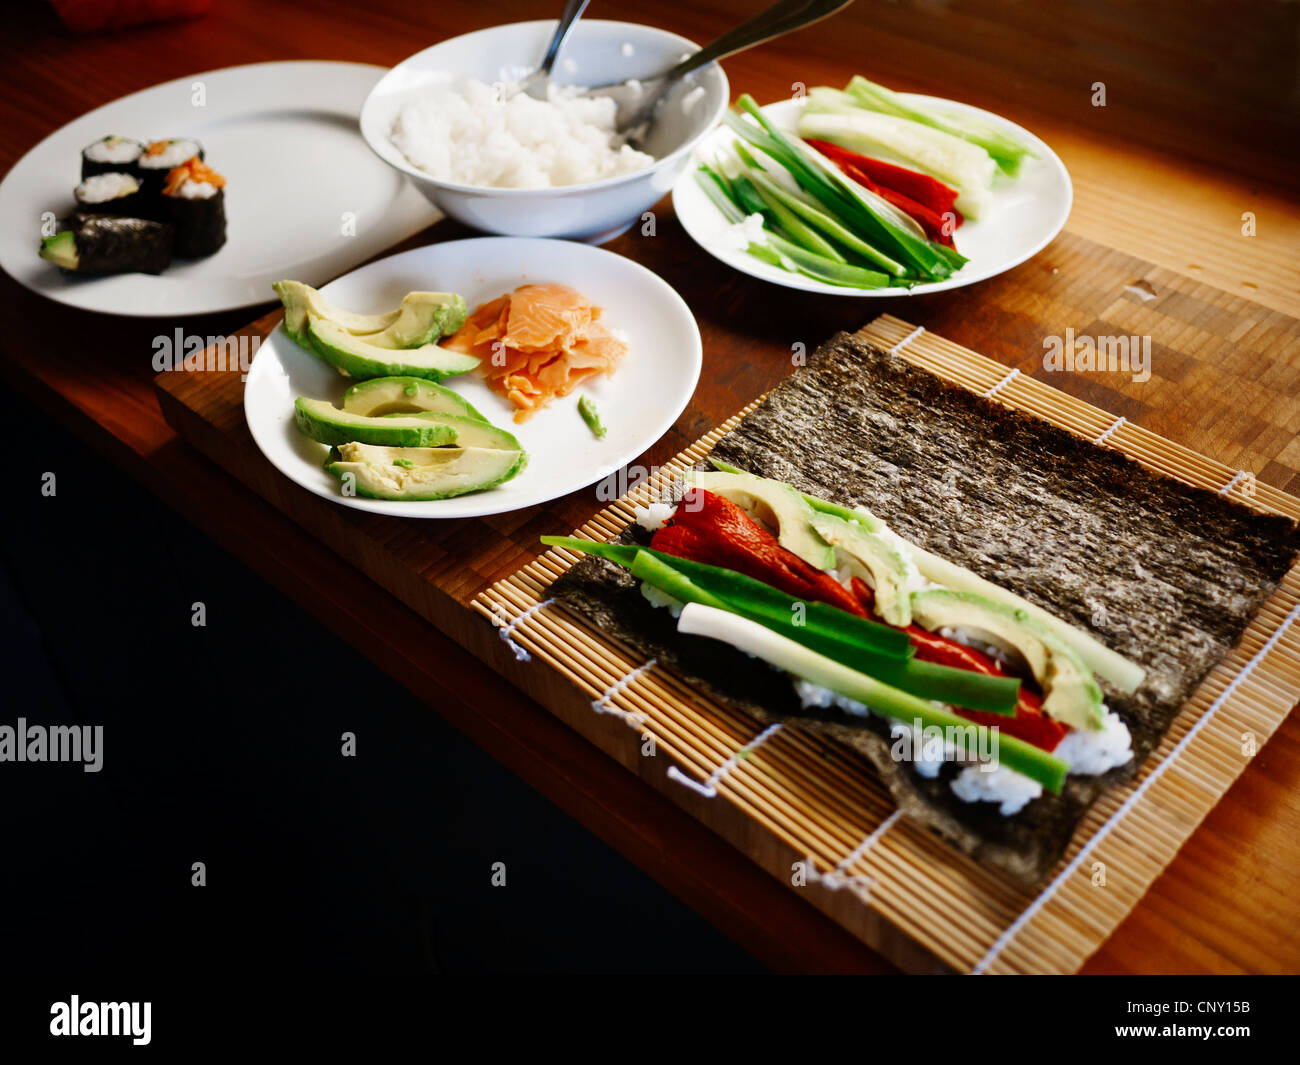 Making sushi at home: smoked salmon, red pepper, avocado, cucmber and spring onion. - Stock Image